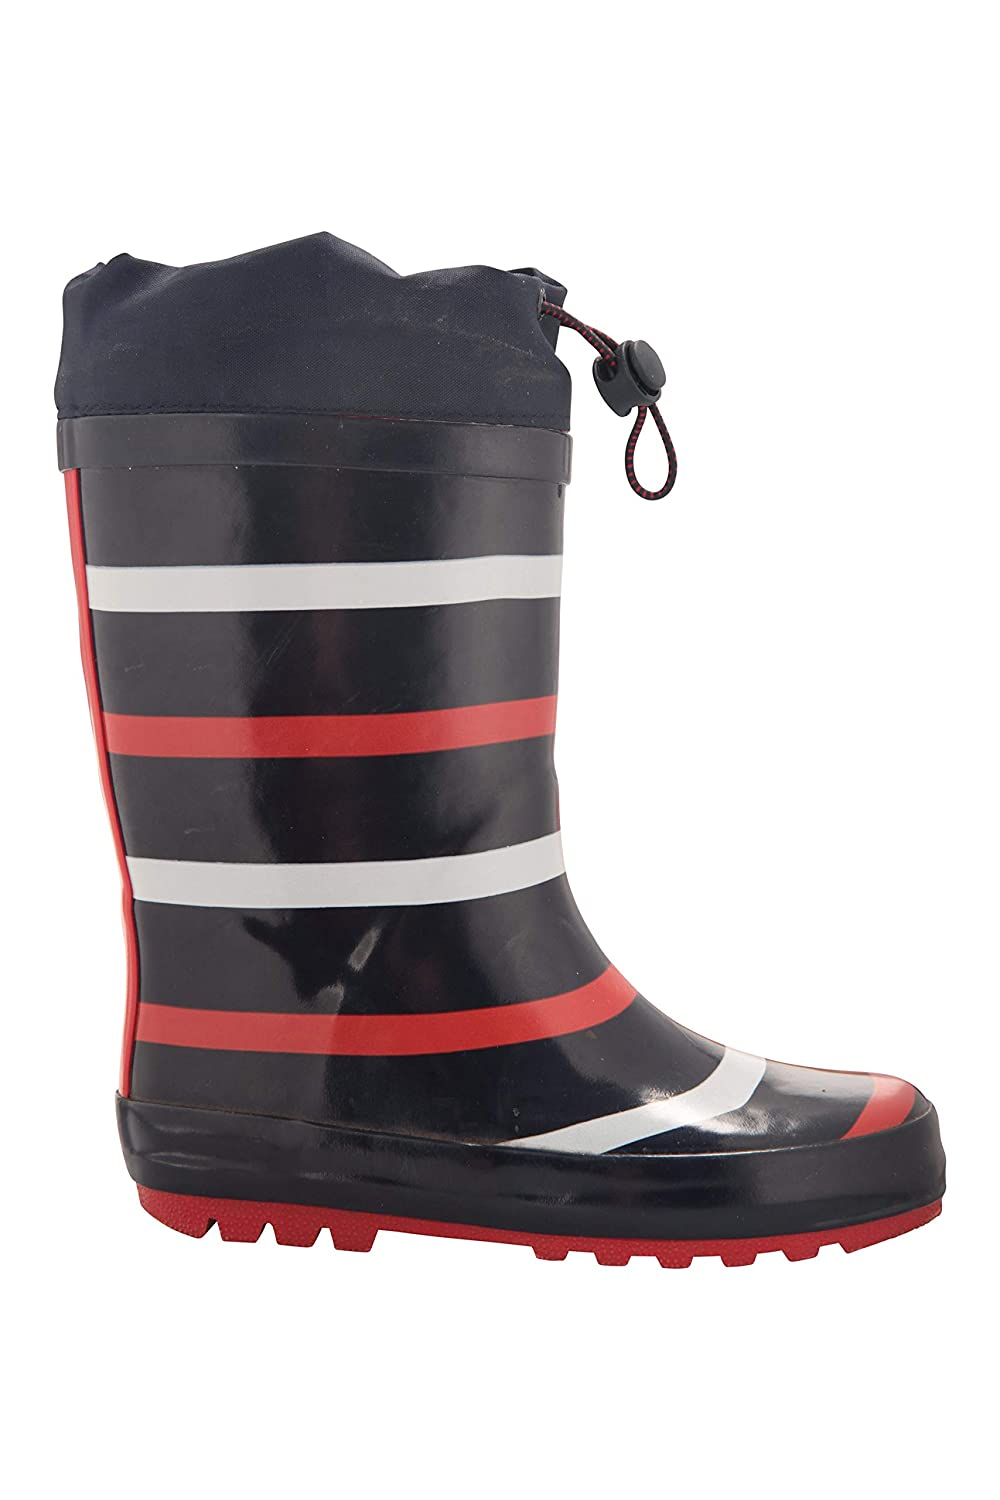 Travelling Lightweight Rubber Outsole Easy to Clean Childrens Shoes for Walking Mountain Warehouse Sunny Rubber Kids Wellies EVA Midsole Rain Wellington Boots